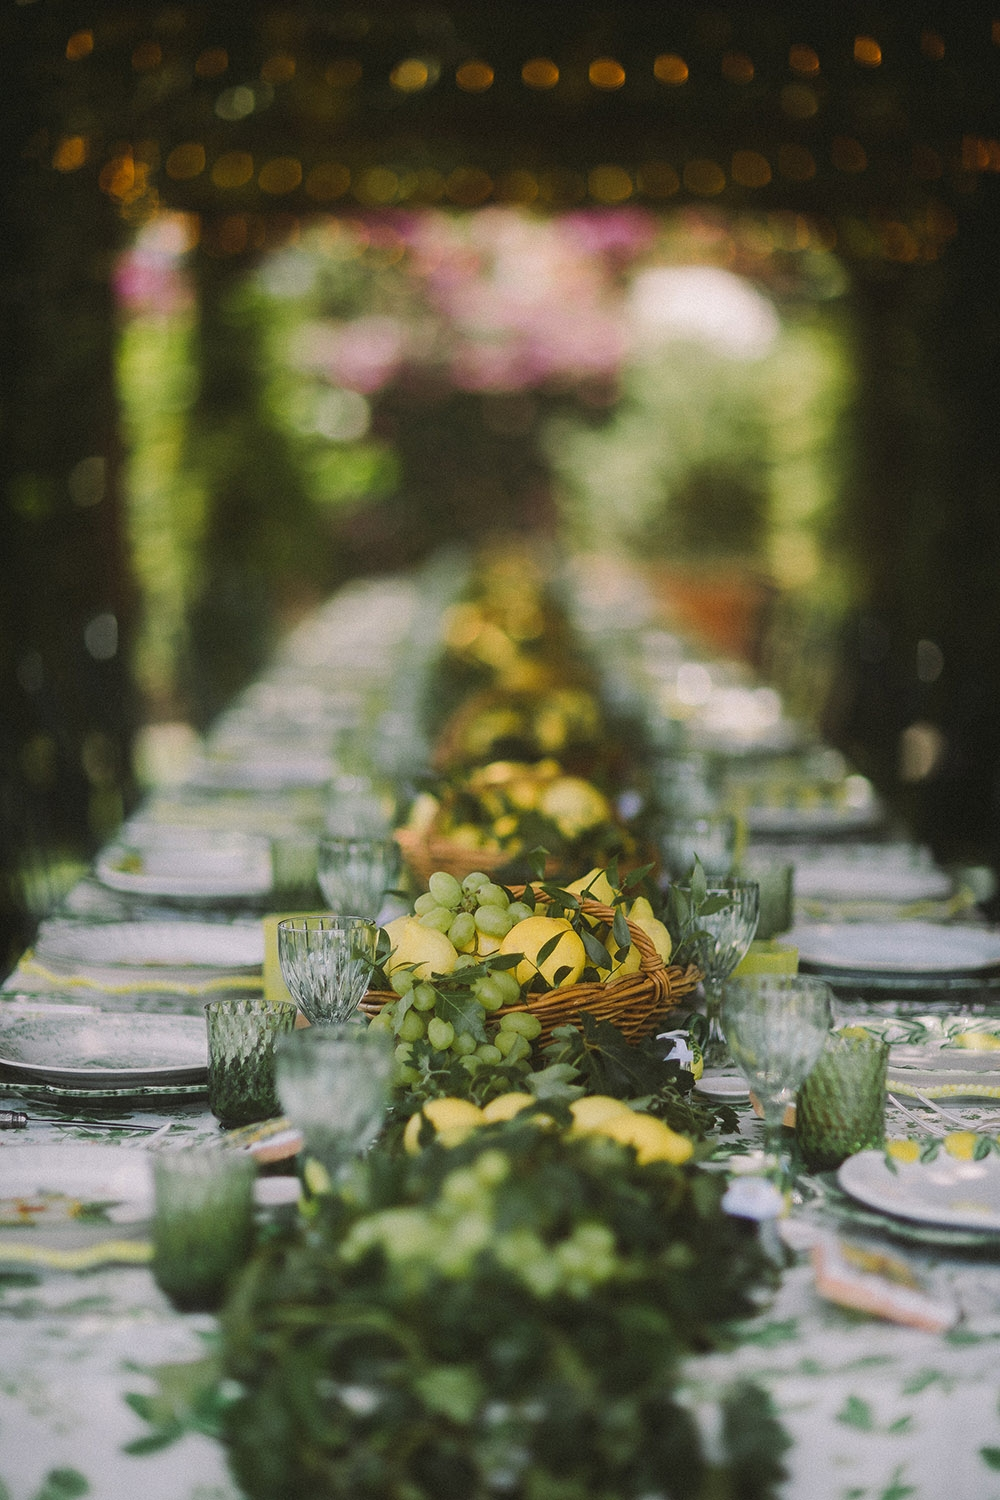 A long rectangular table underneath a lemon trellis has been set for lunch with wicker baskets of lemons and grapes as the centerpiece, light green crystal glasses and patterned plate settings.